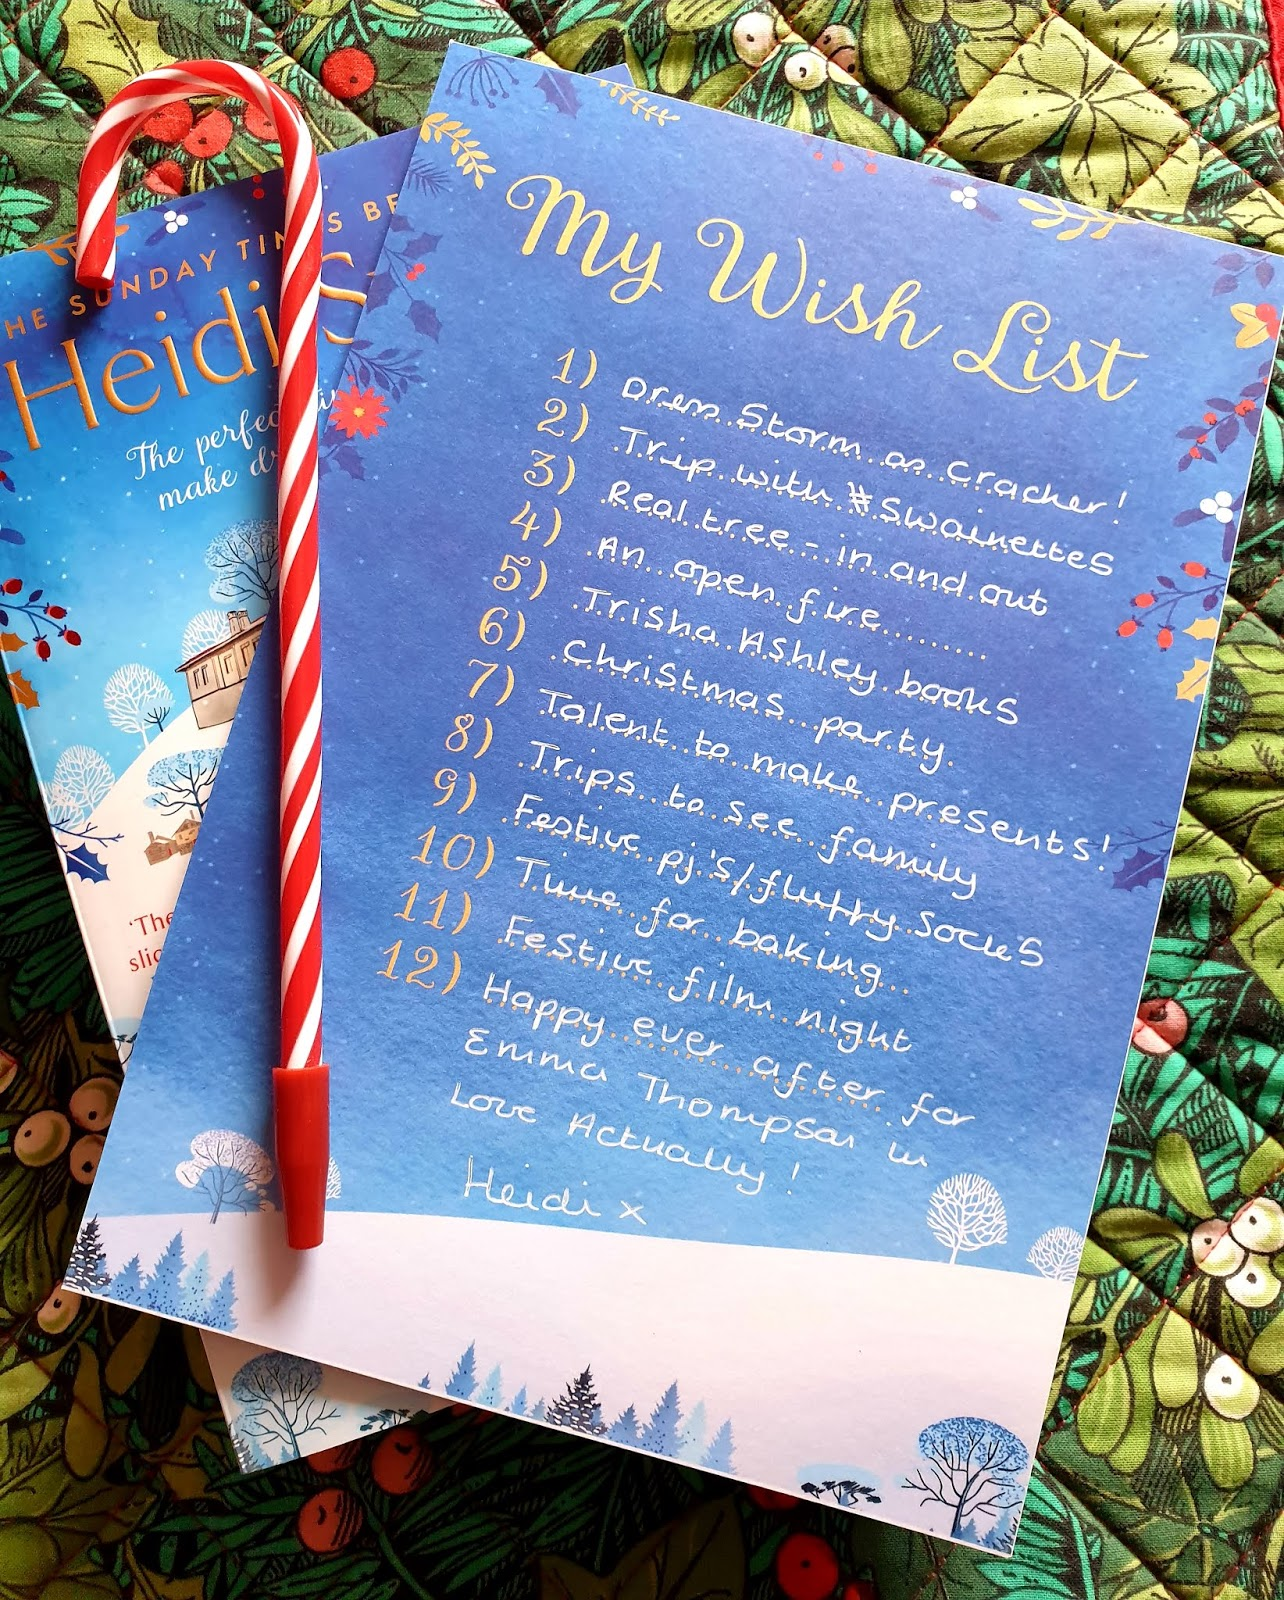 Christmas Wish List 2019.Heidi Swain The Christmas Wish List Publication Day